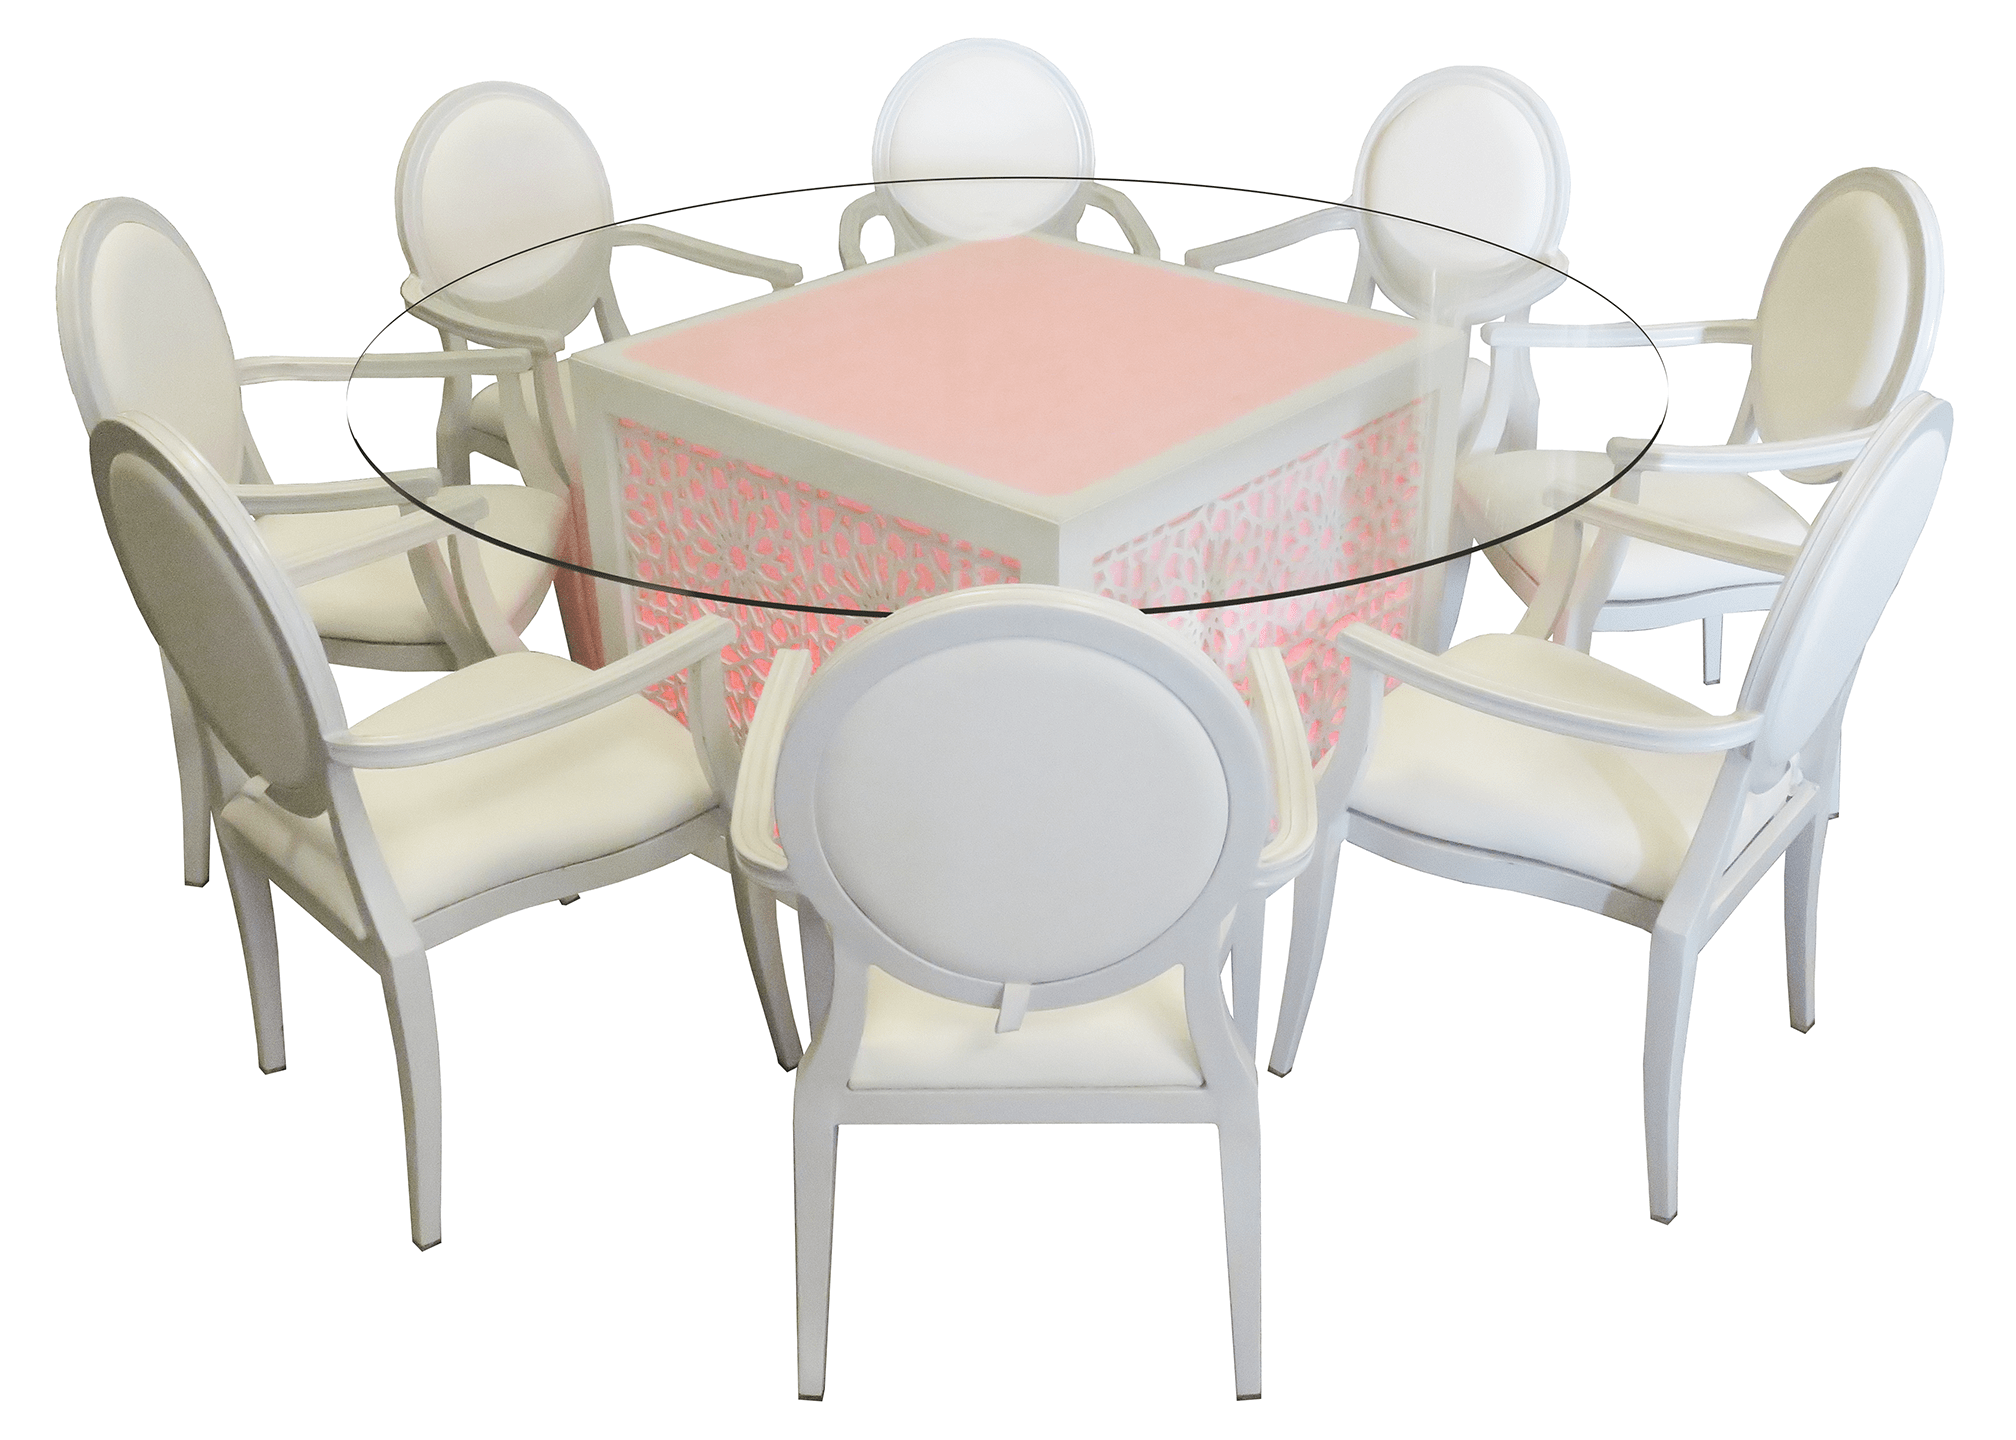 chair covers for sale in dubai game of throne rent or buy mashrabiya round glass dining table event